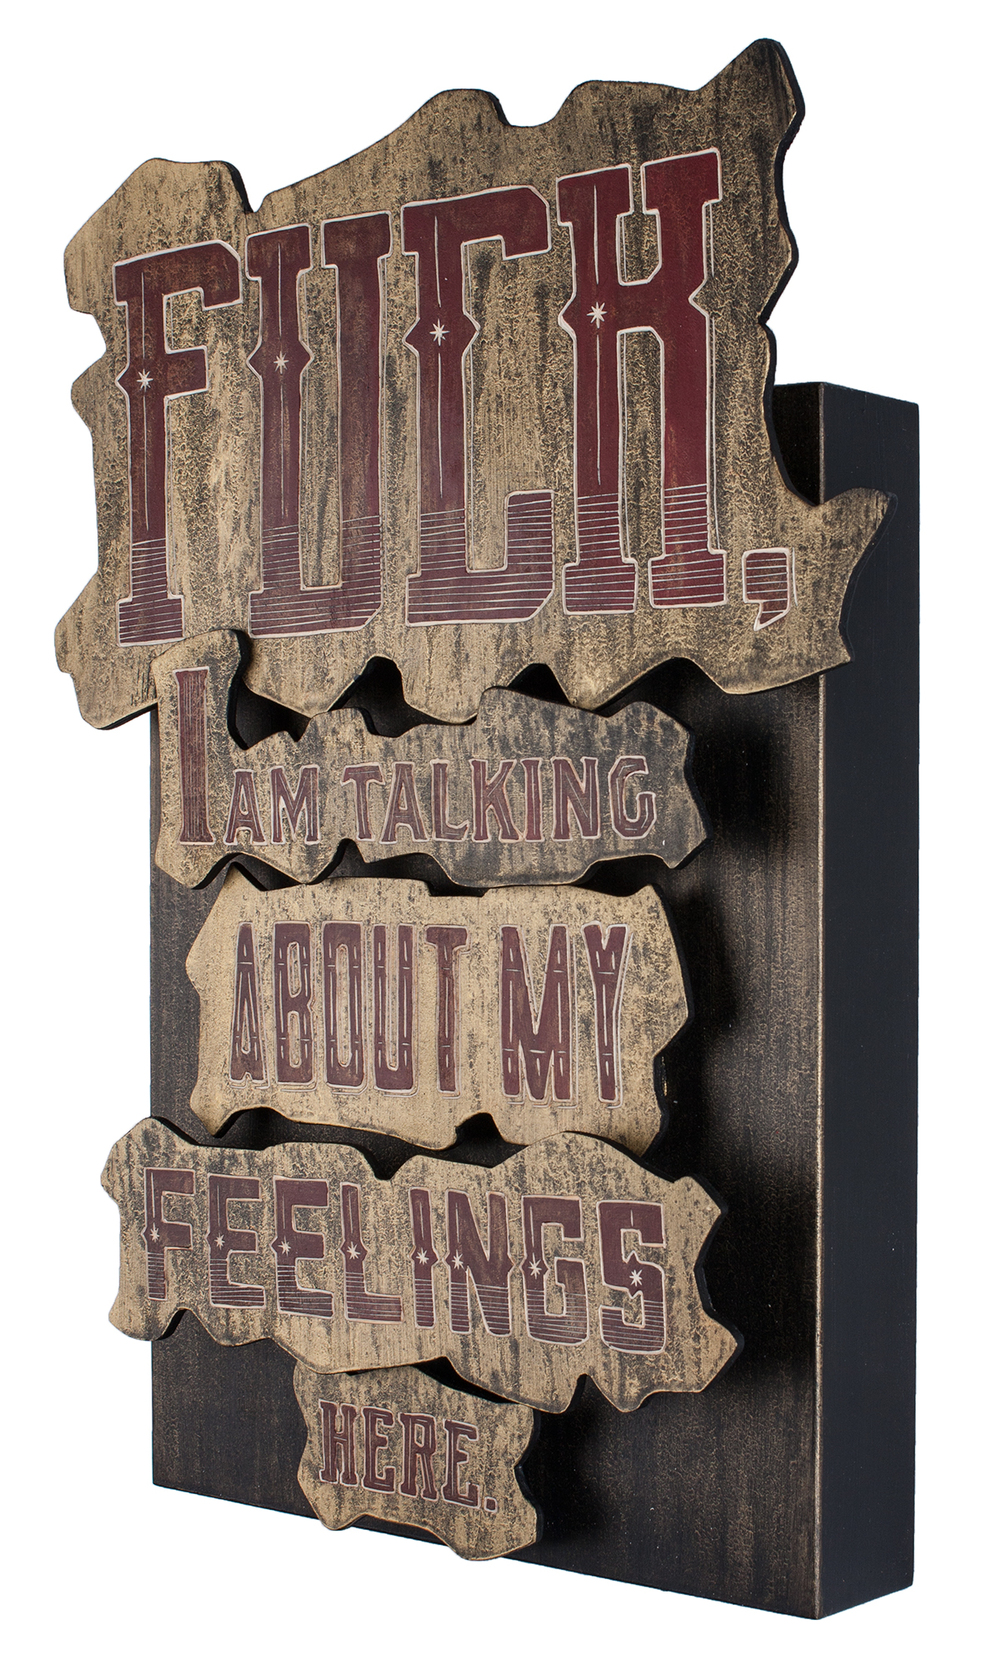 Alex Diamond: Fuck, I am talking about my feelings here. (2015)  Woodcut, acrylic paint, 50 x 30 x 9 cm